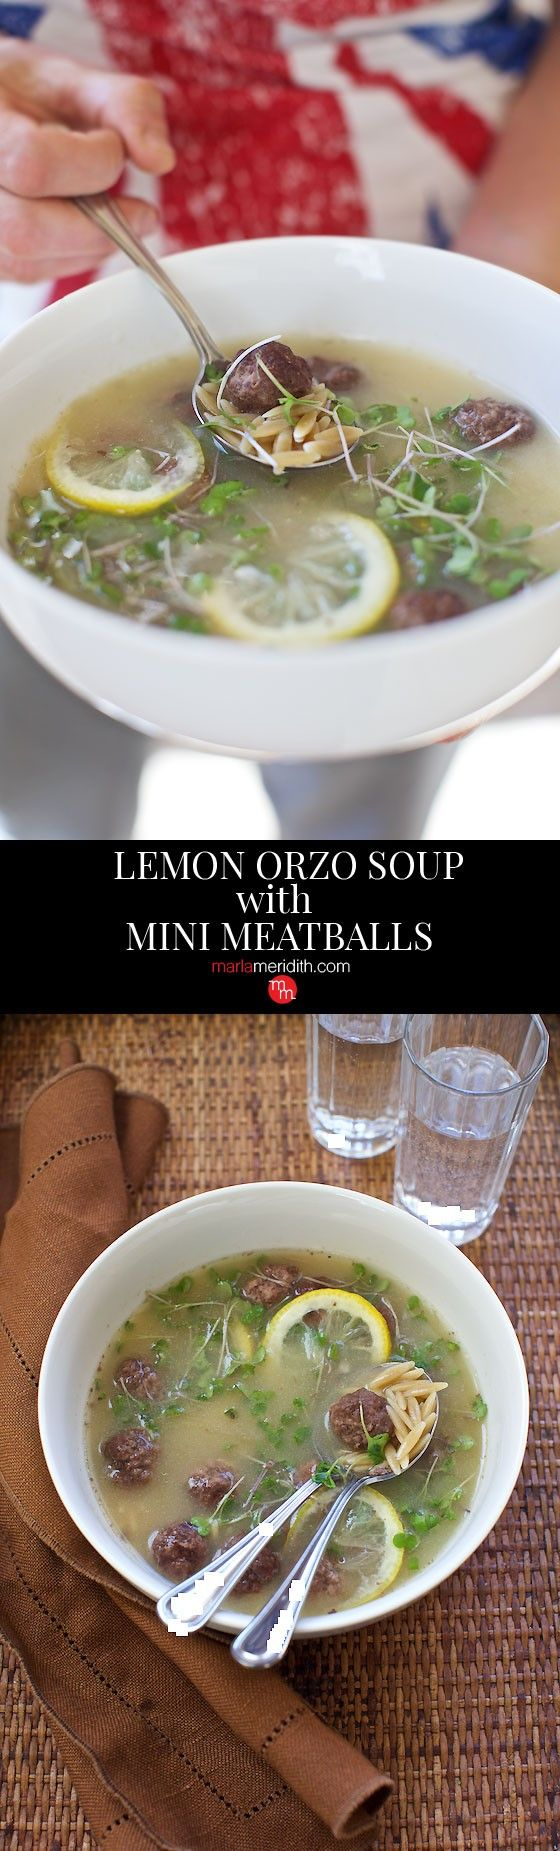 Lemon Orzo Soup with Mini Meatballs | This soup can be on your table in just 12 minutes! MarlaMeridith.com ( @marlameridith )